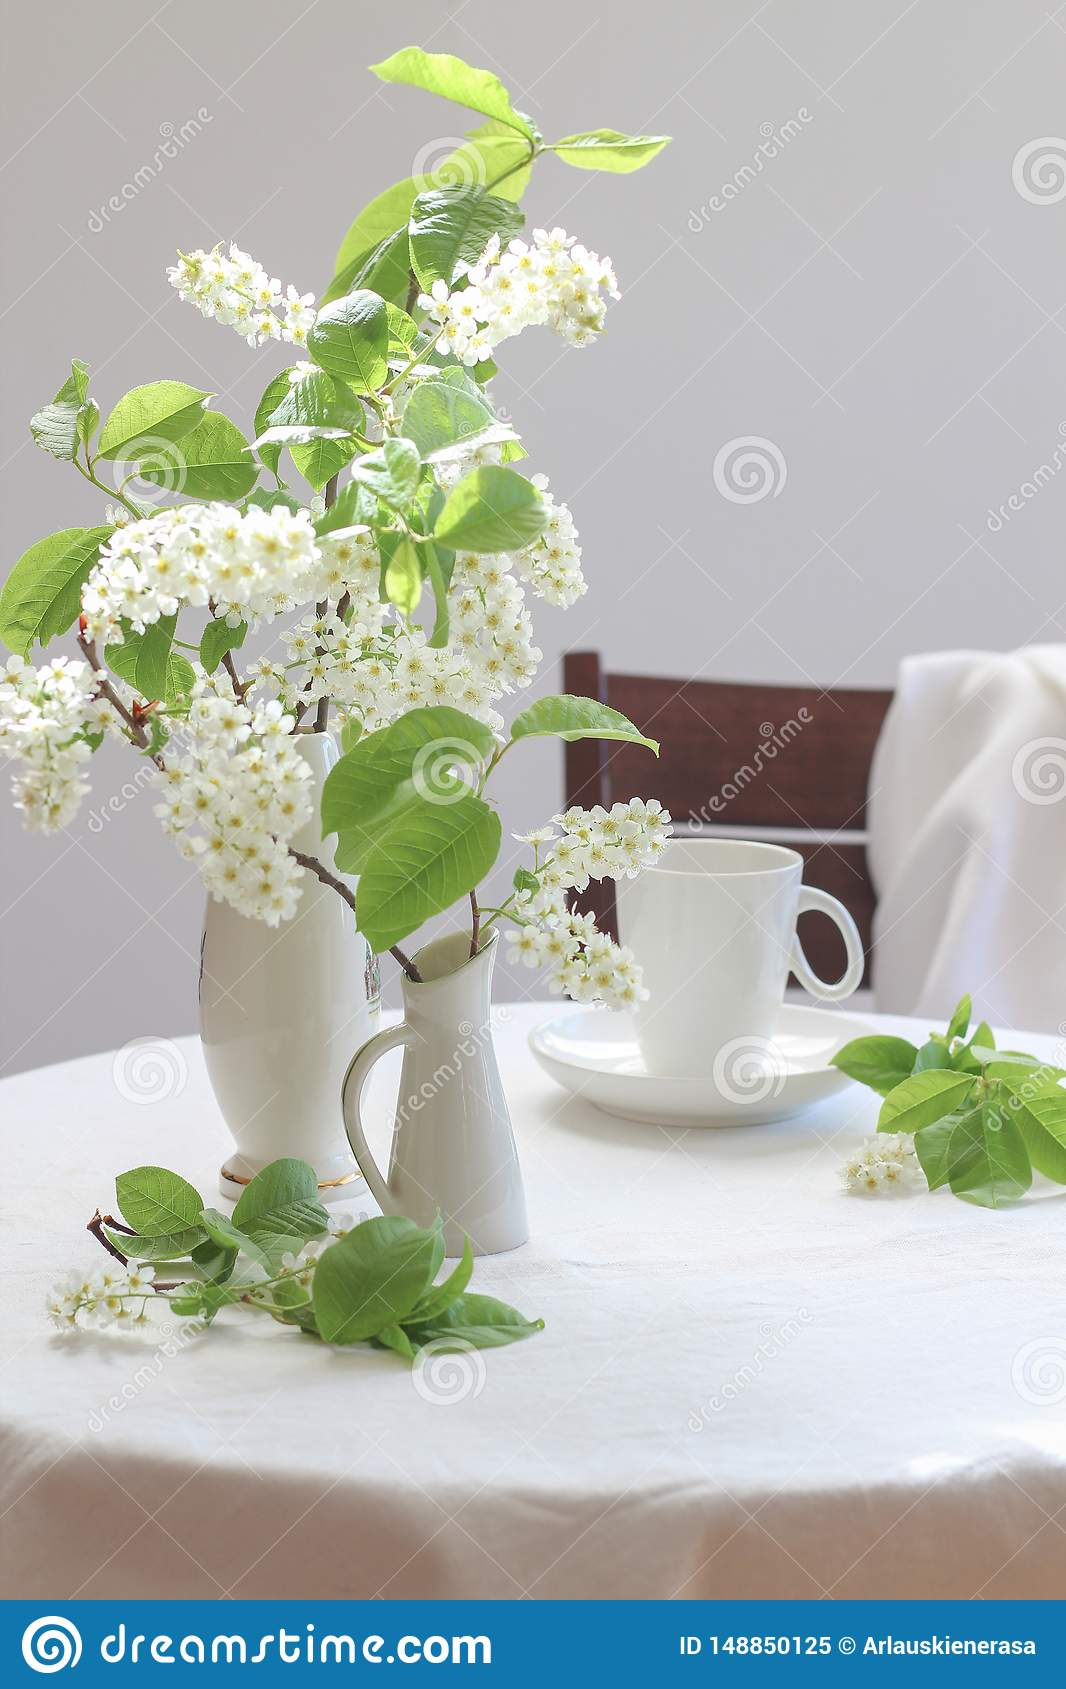 White bird cherry tree blooms in small vases and a cup of coffee on a white table